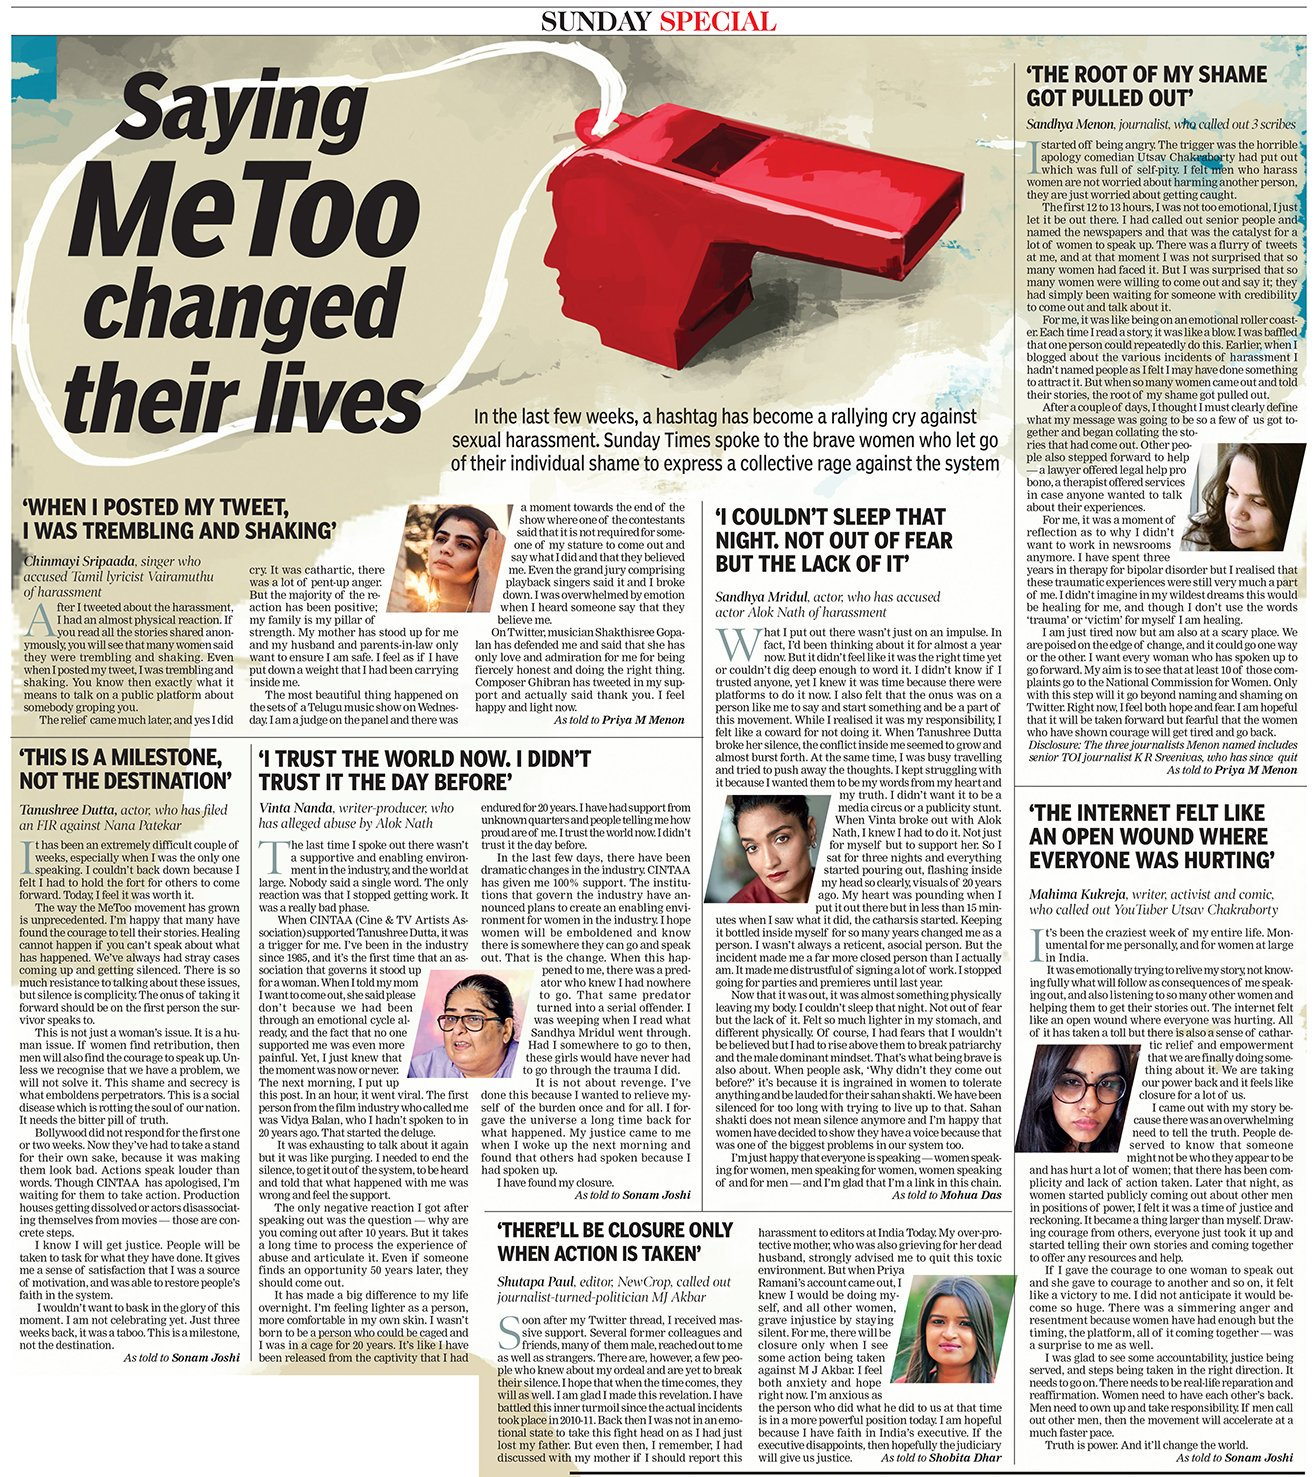 #MeToo - Female Voices against Sexual Harassment